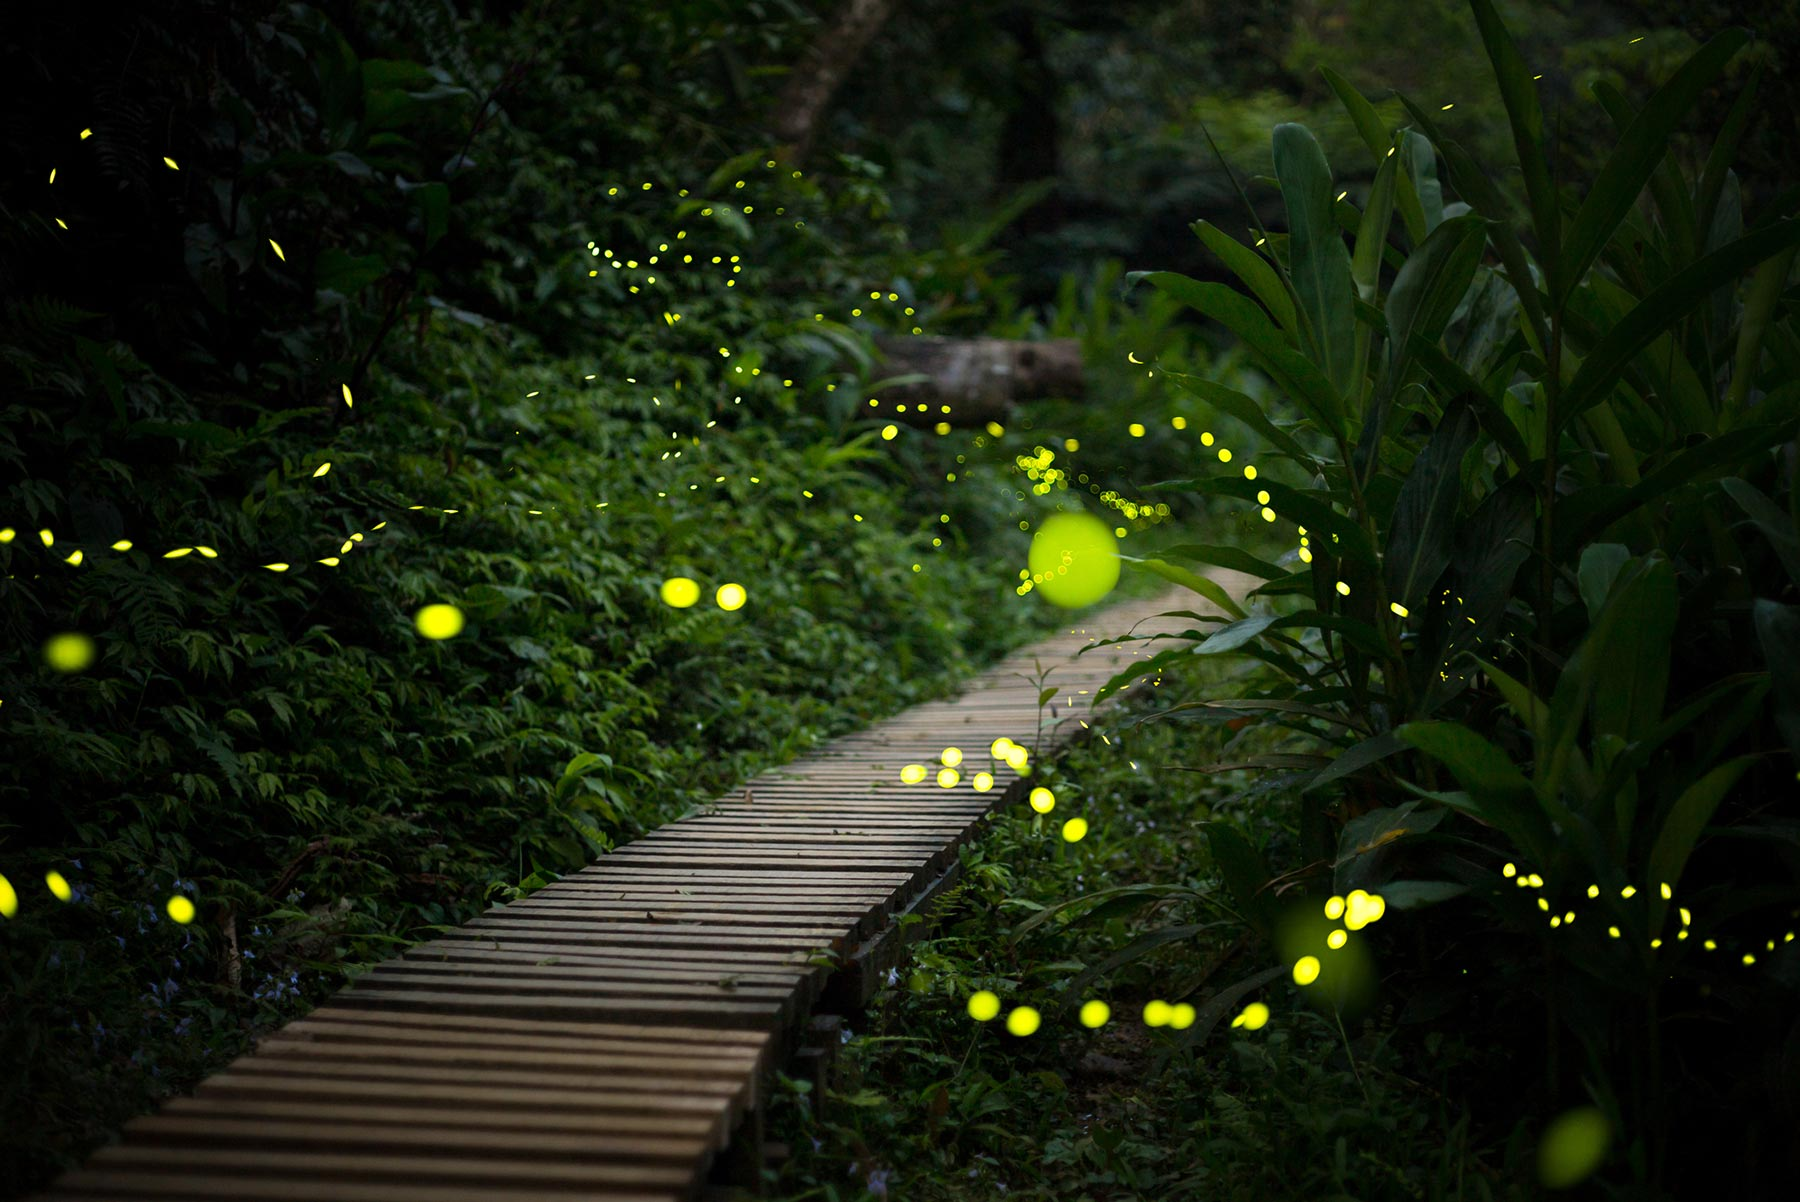 fireflies in a garden